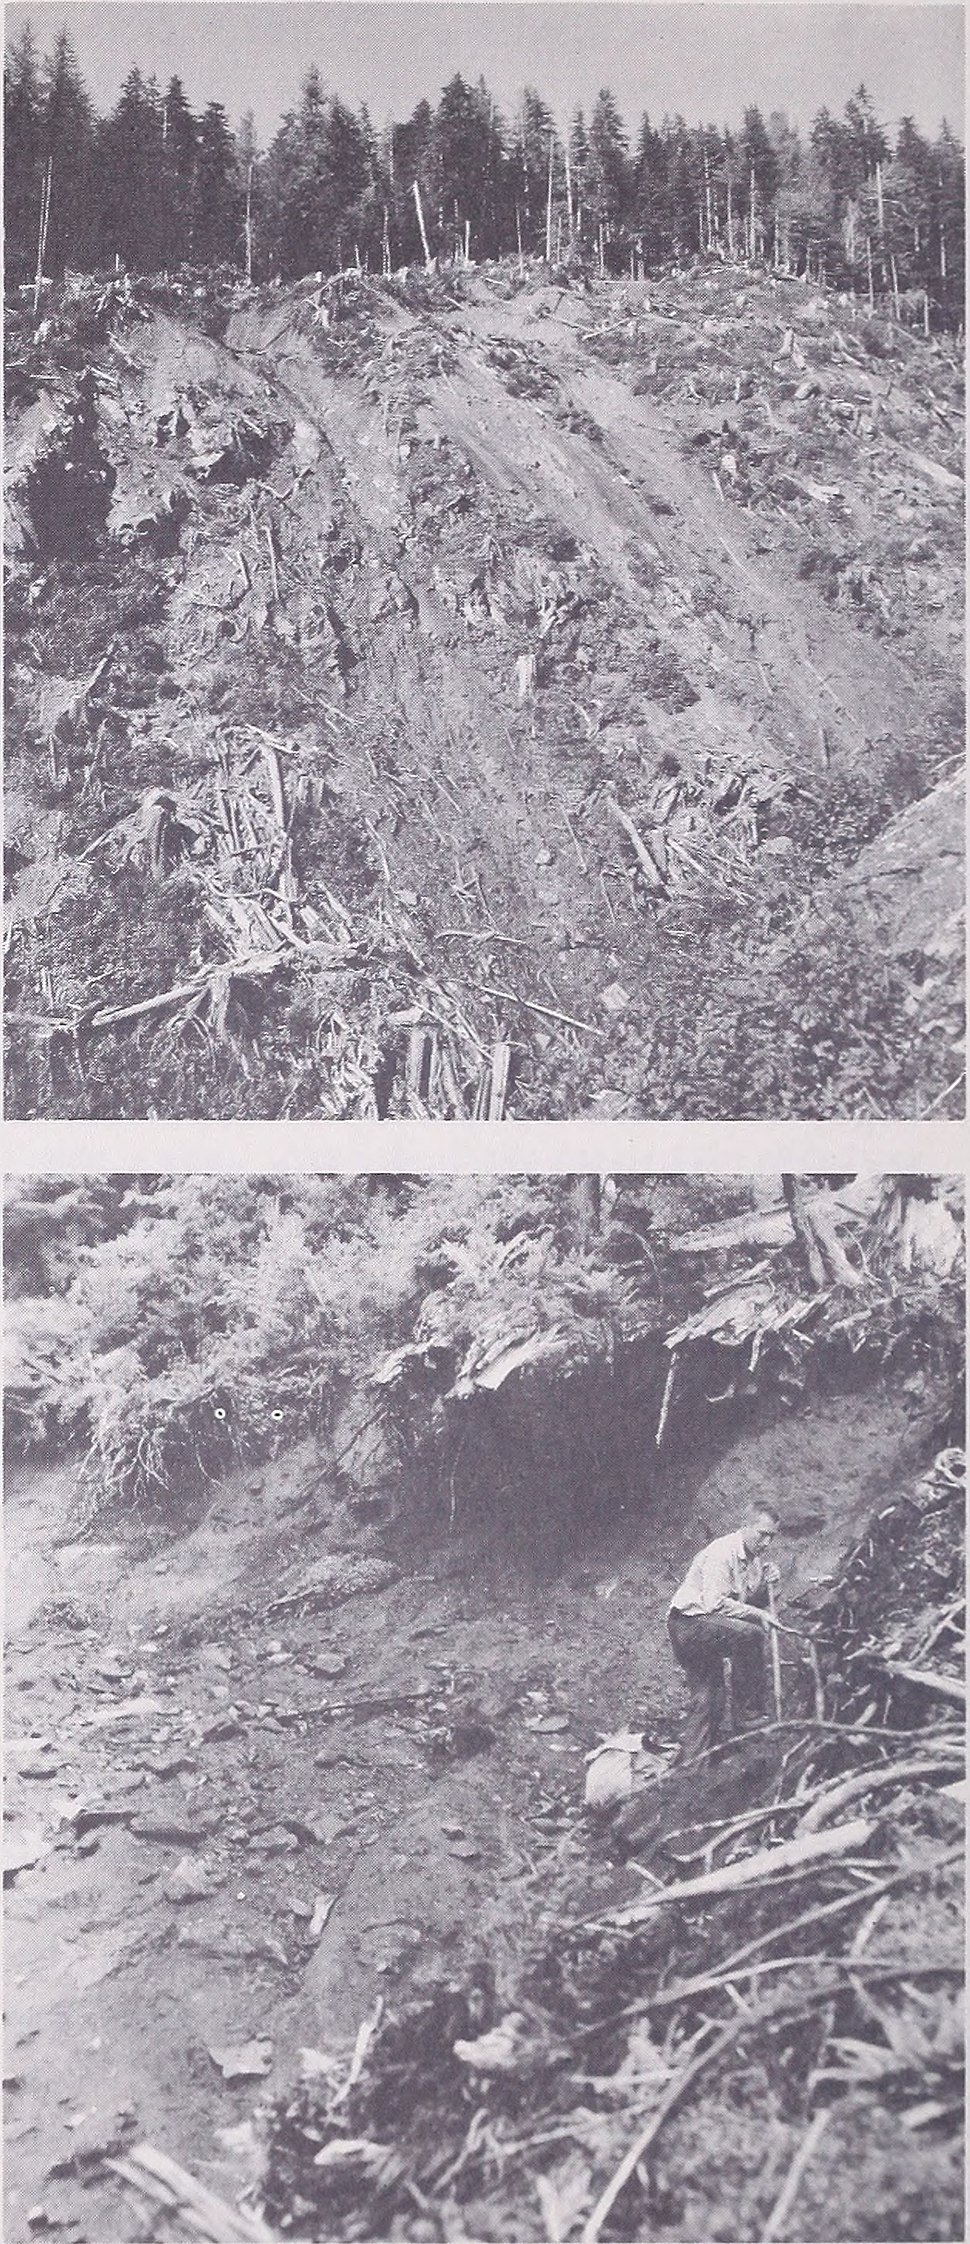 Mass wasting in coastal Alaska (1969) (20385447860)